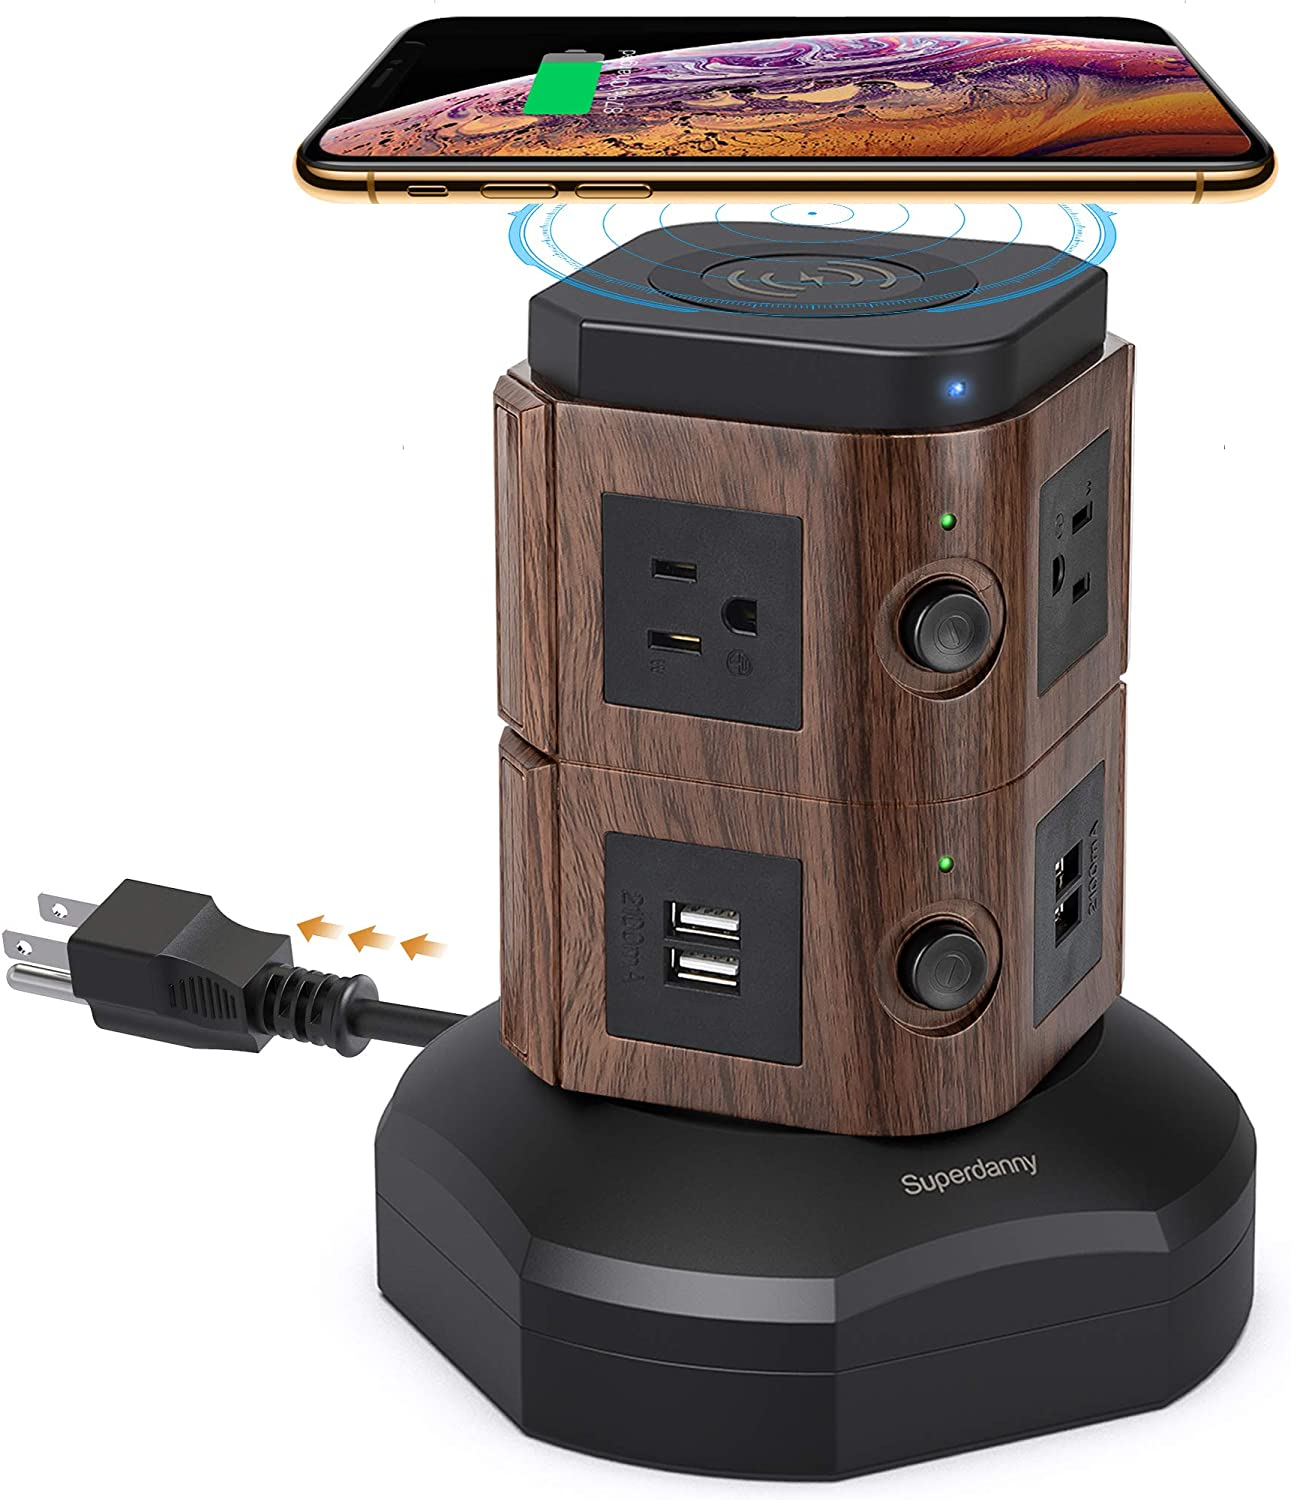 SUPERDANNY Power Strip Tower with 10W Wireless Charger, Spin Surge Protector 13A Vertical Charging Station with 6 AC Outlets+4 USB Ports and 6.5ft Extension Cord for Home Office Dorm, Deep Wood Grain